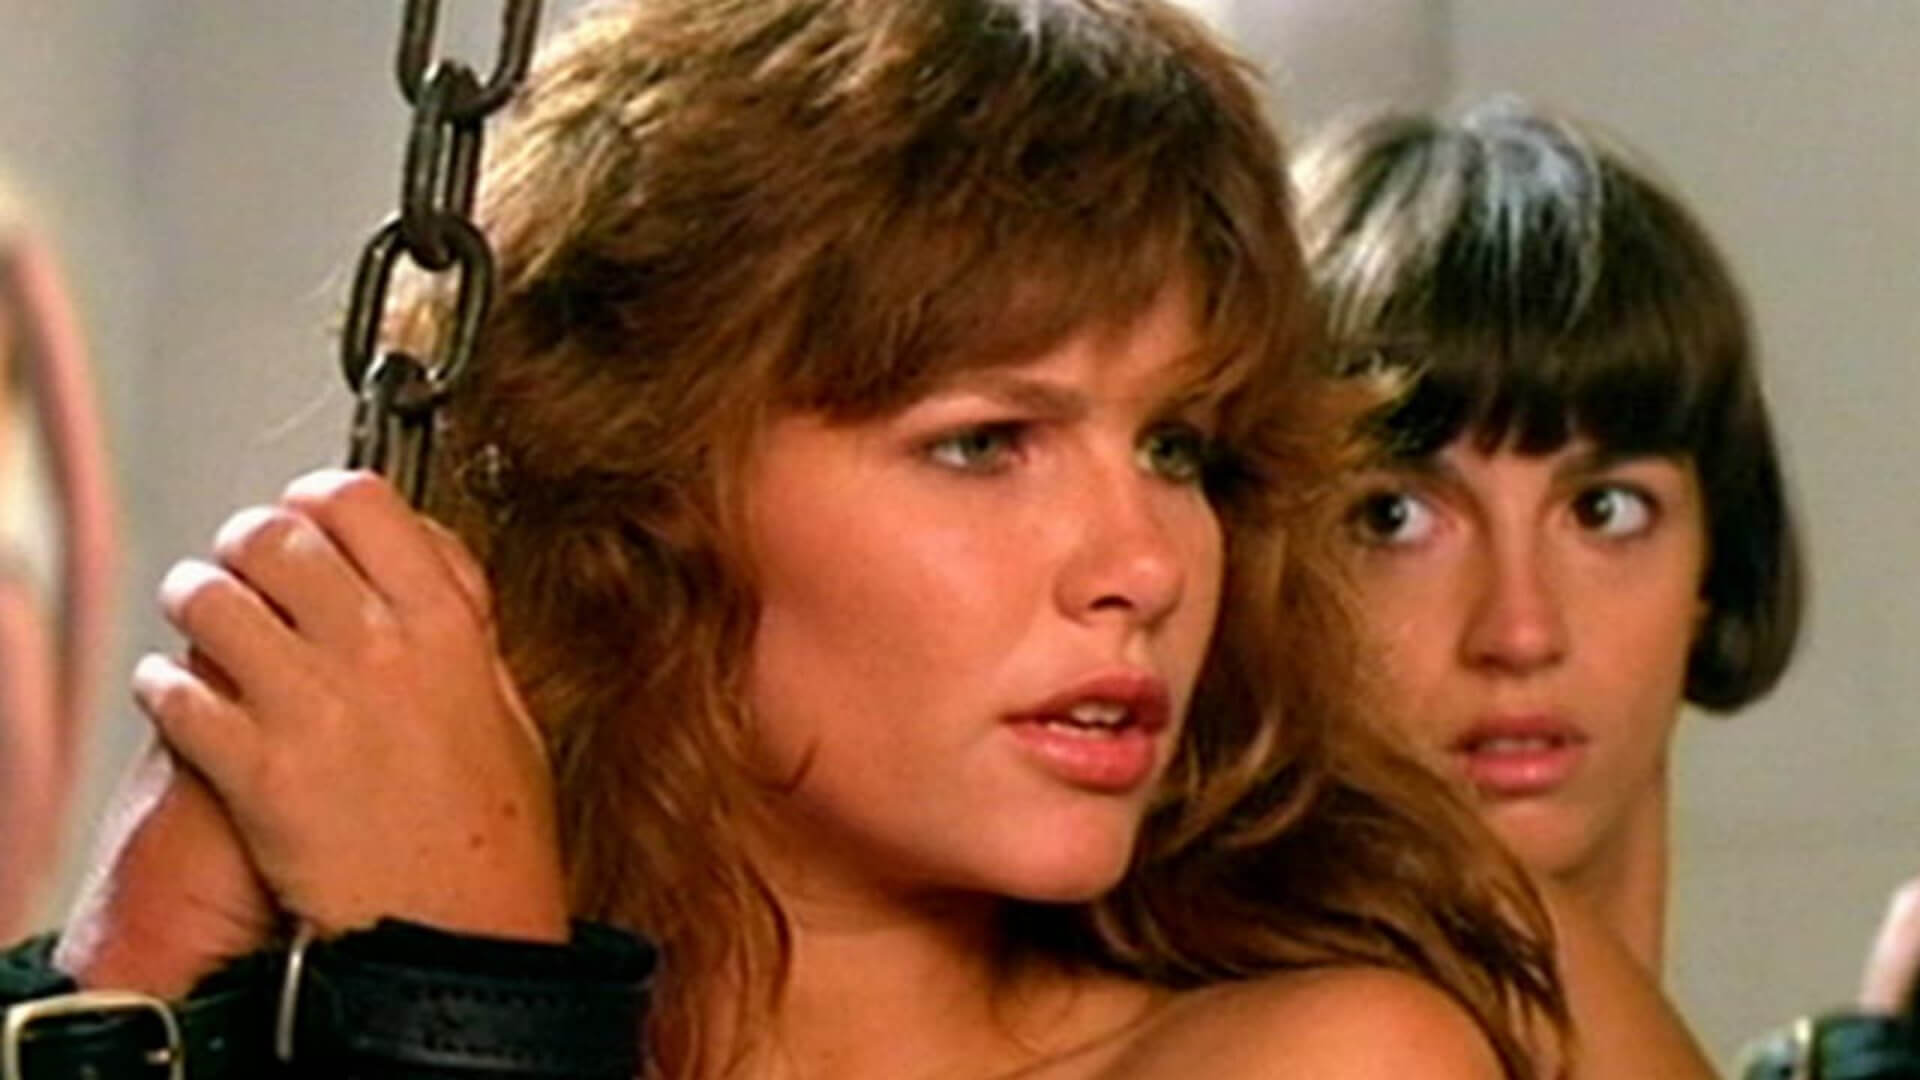 Julie E Kitaen, Music Video Babe of the 80s, Dead at 59